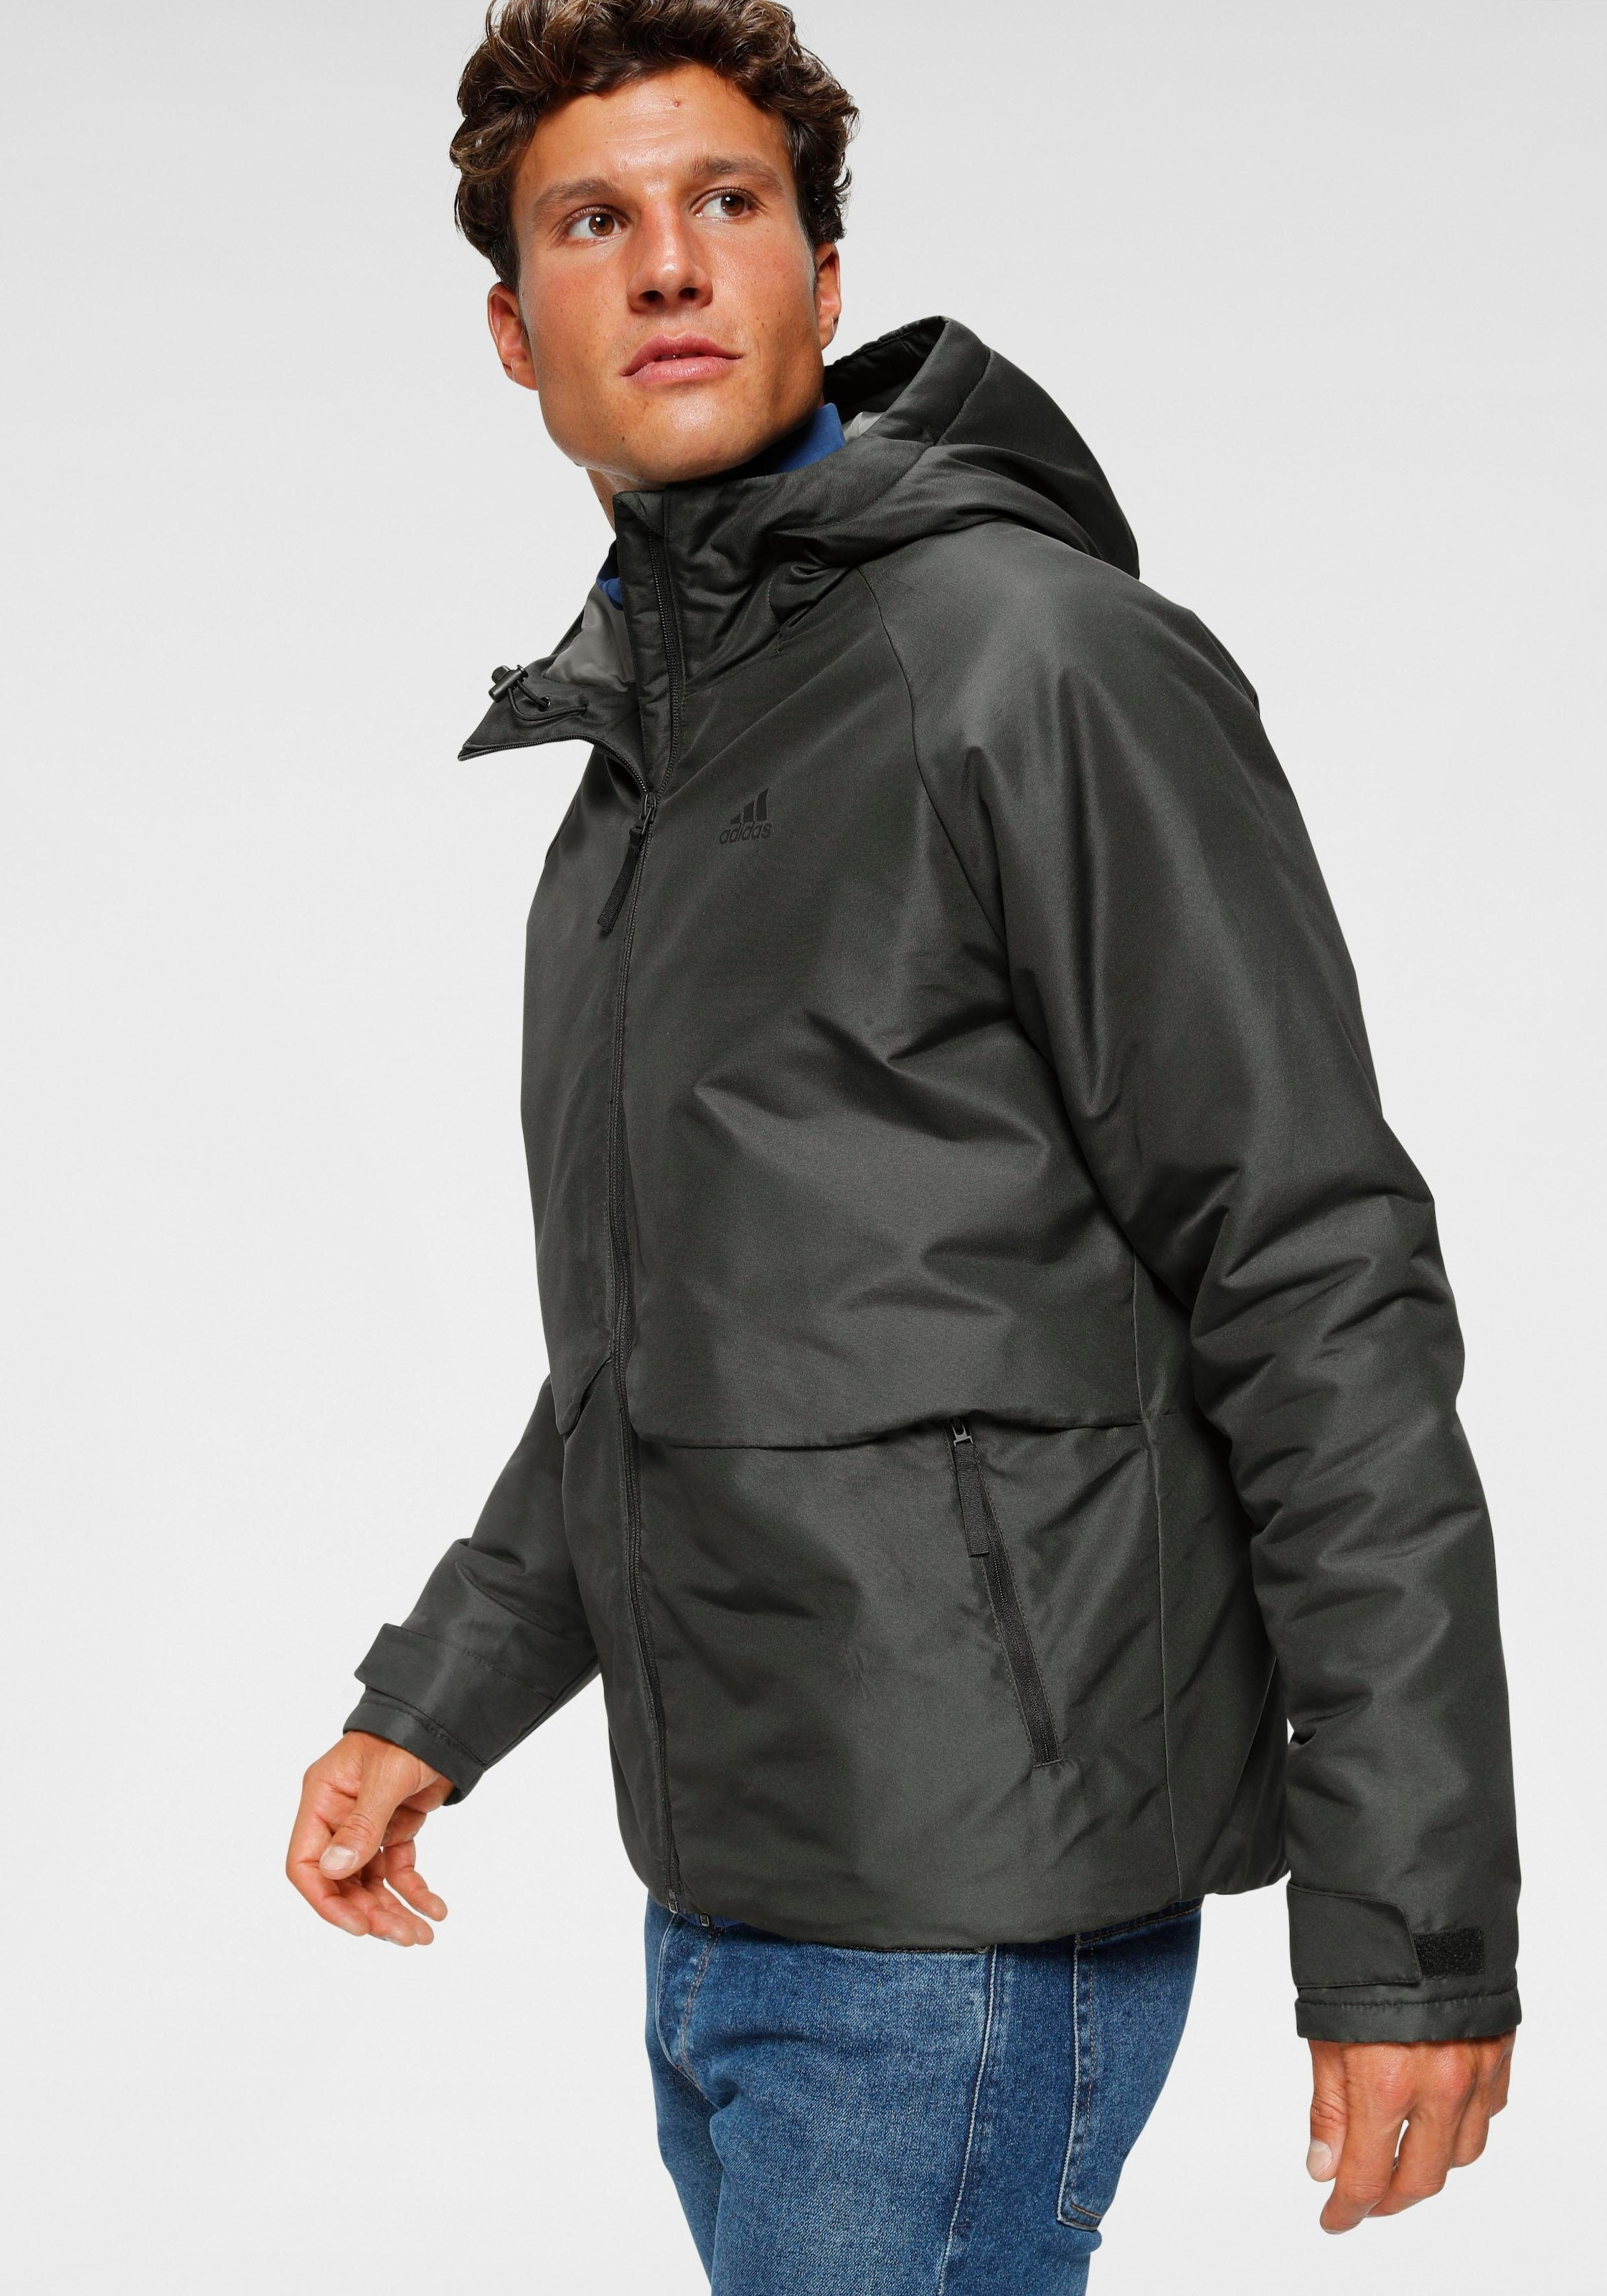 adidas Performance Funktionsjacke DP INSULATED H JACKET | 04062054556724, 04062054568406